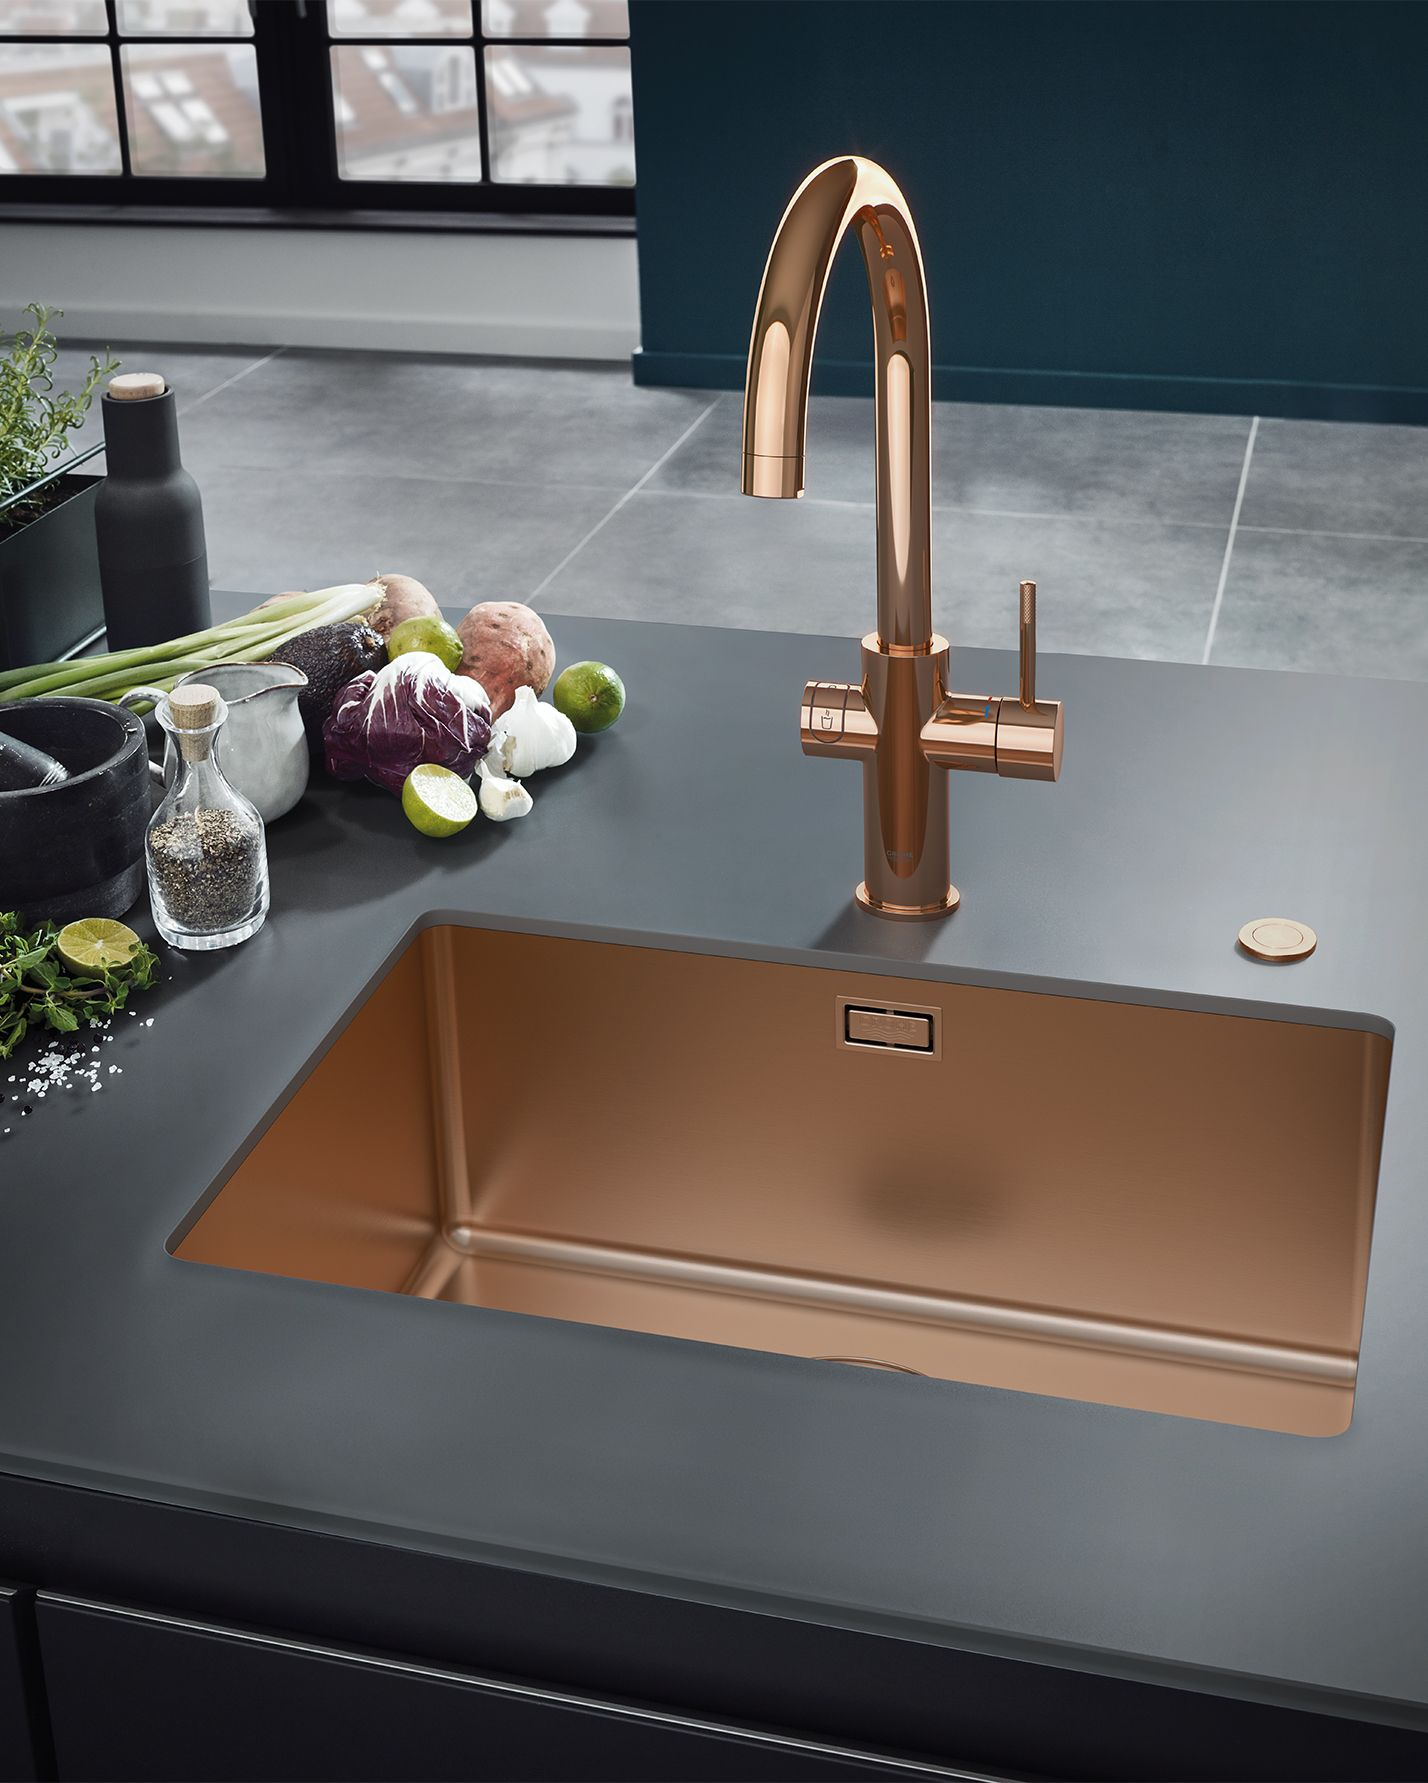 24 grohe ideas grohe grohe kitchen